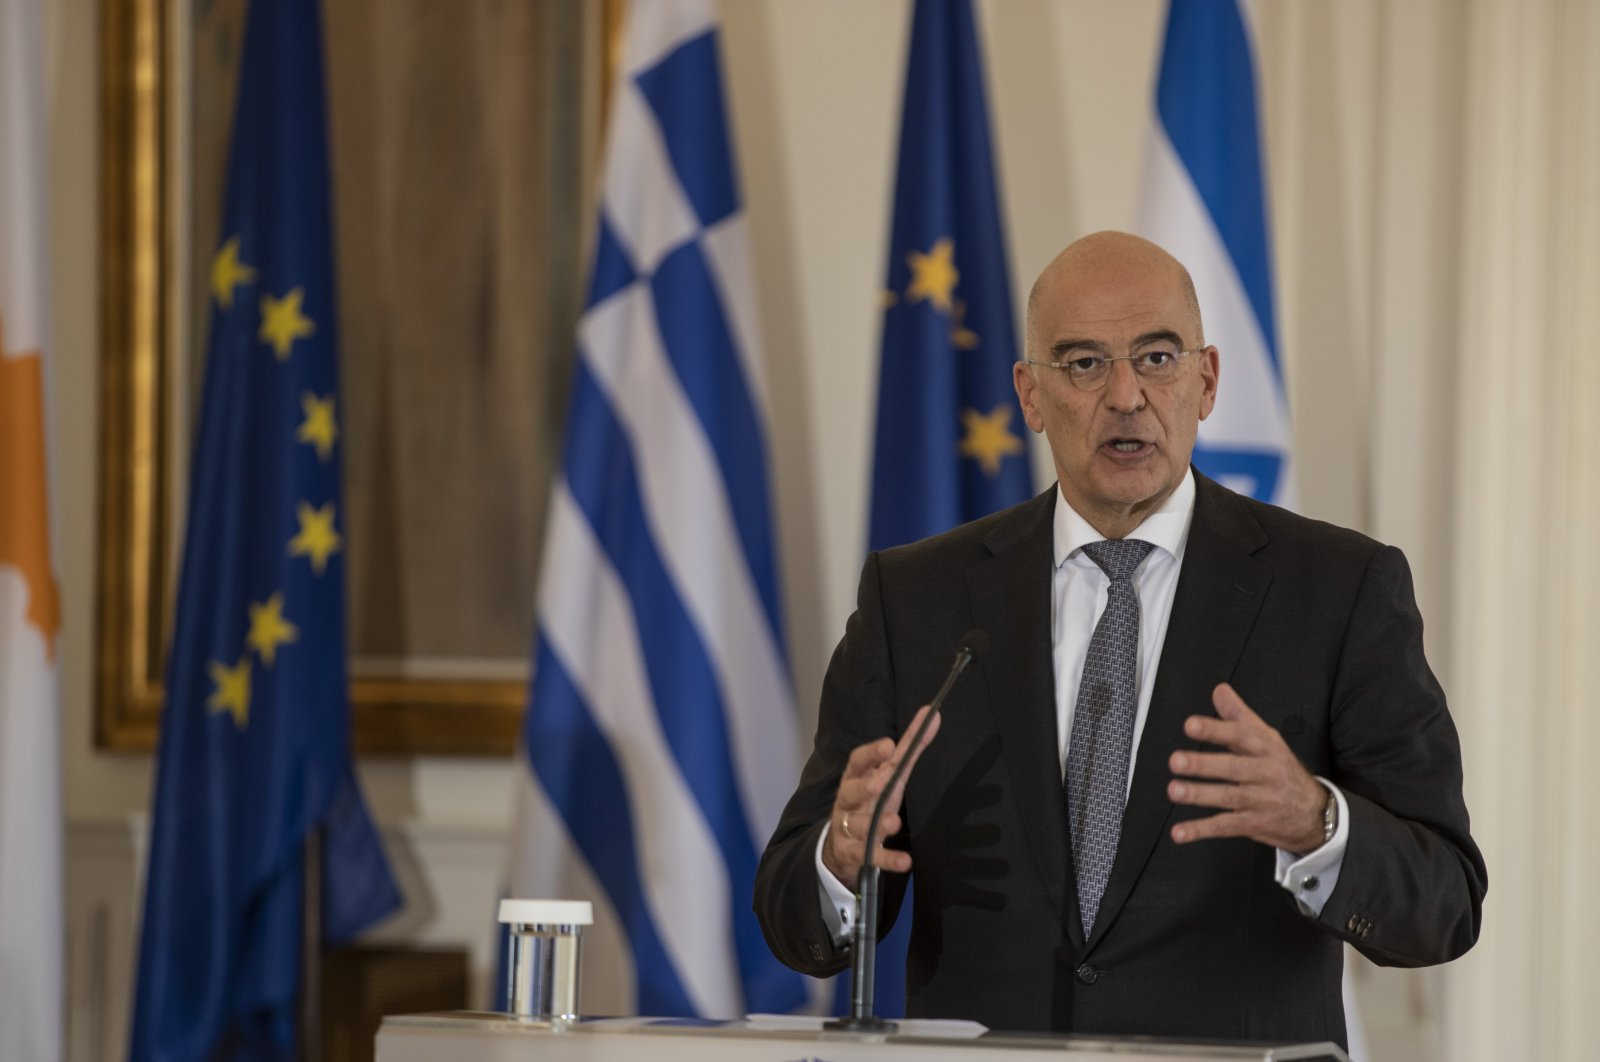 Greek Foreign Minister Nikos Dendias speaks during a joint news conference following a foreign ministers' meeting with his counterparts Gabi Ashkenazi of Israel and Nikos Christodoulides of the Greek Cypriot administration, in Athens, Greece, Oct. 27, 2020. (AP Photo)